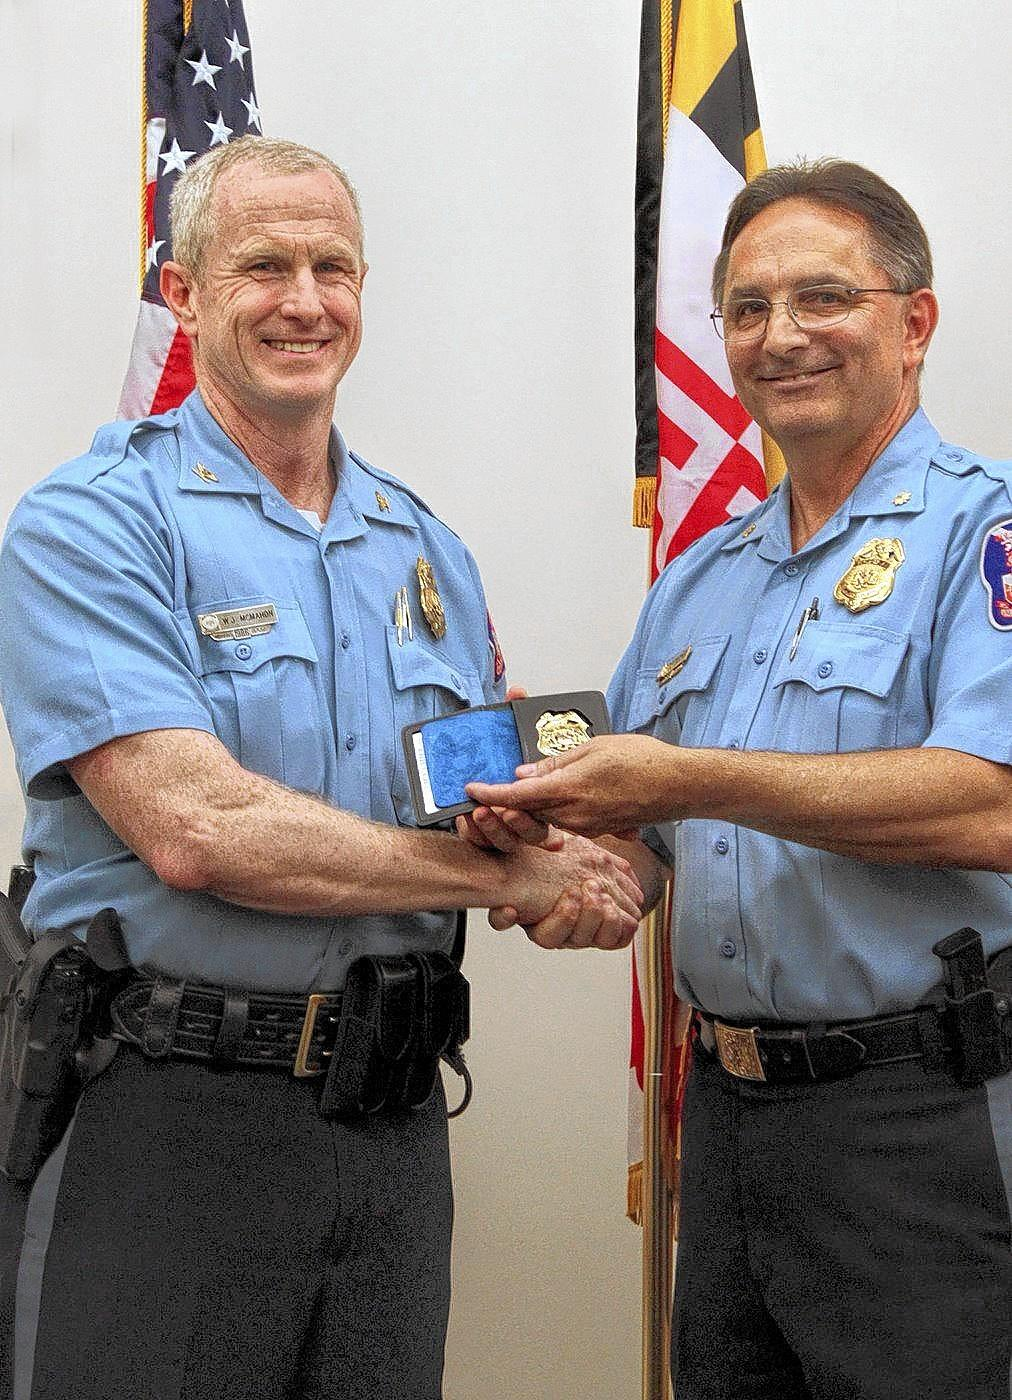 Police Chief William McMahon, left, was presented with a retirement badge after a 30-year career in law enforcement, including eight as the head of the department. Maj. Gary Gardner, right, who succeeds McMahon effective July 1, presented McMahon with the badge.